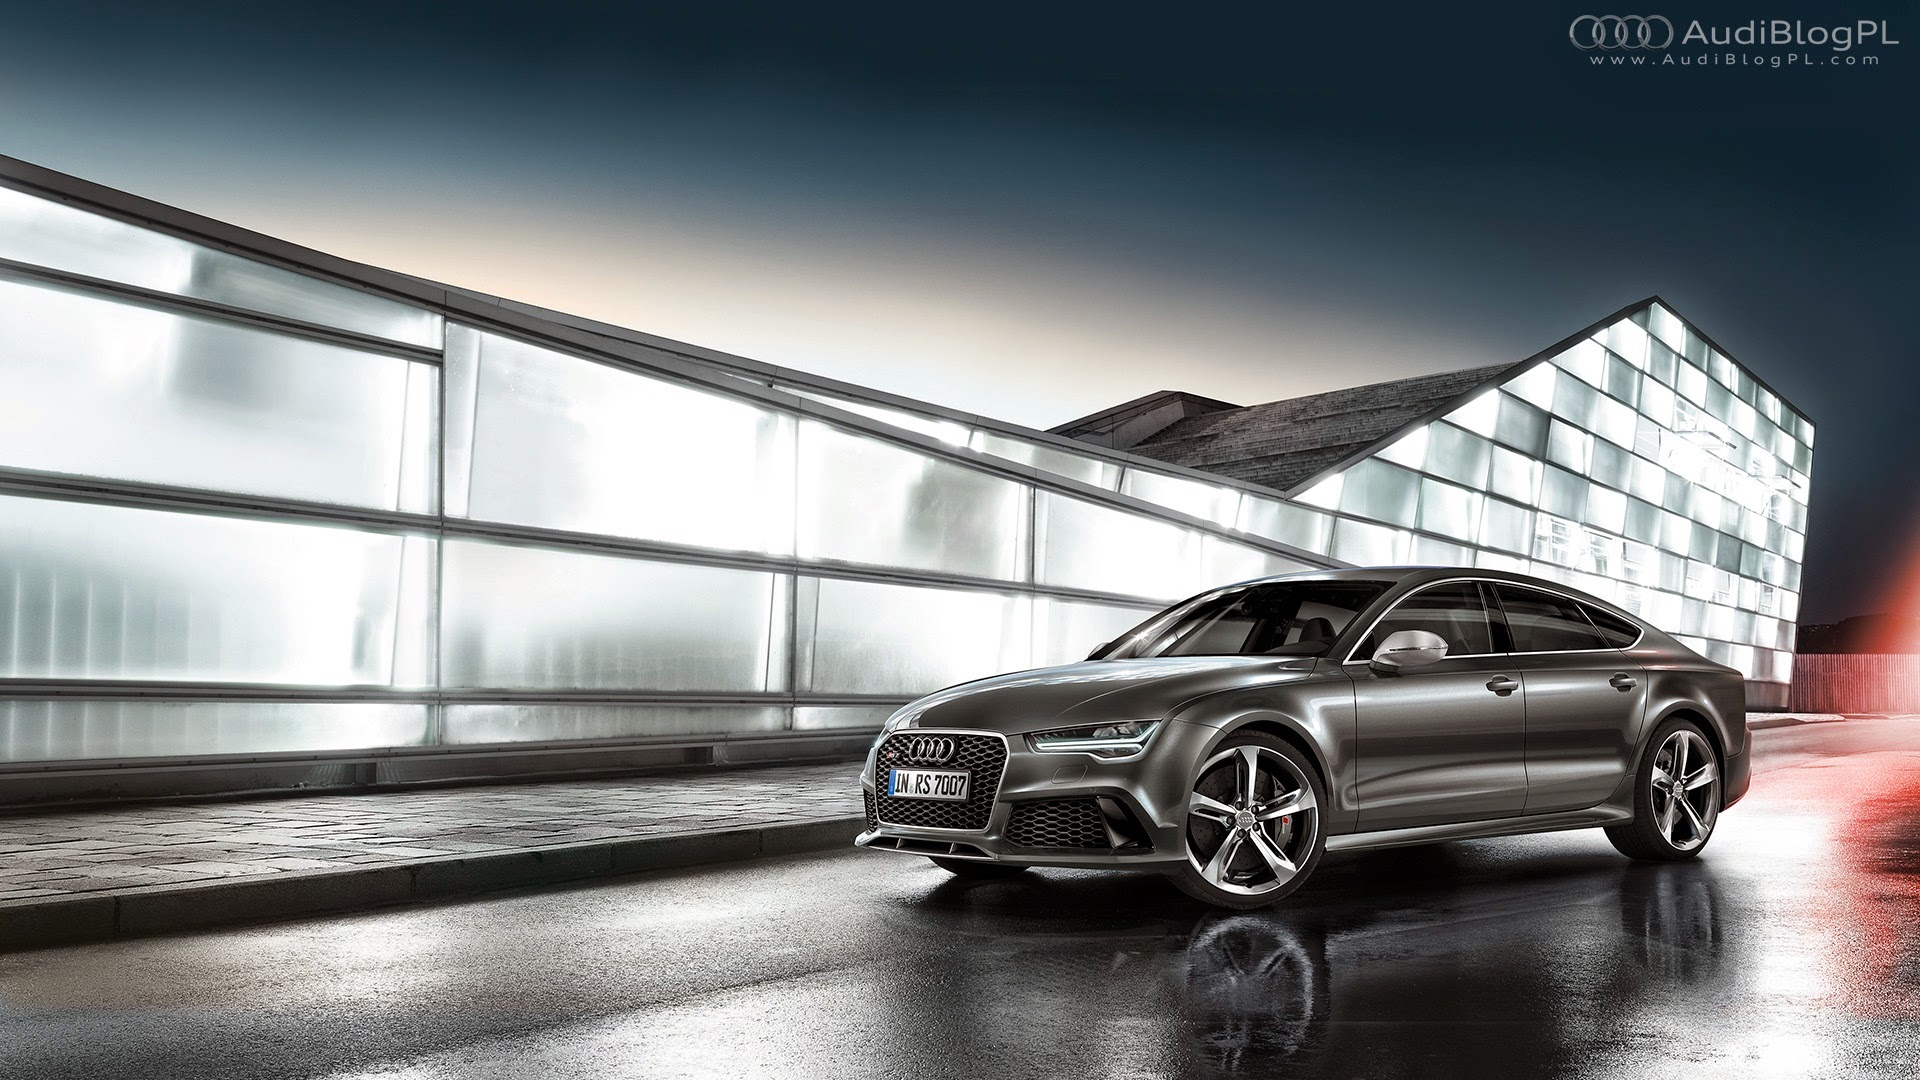 AudiBlogPL: Tapety: Audi RS7 FL